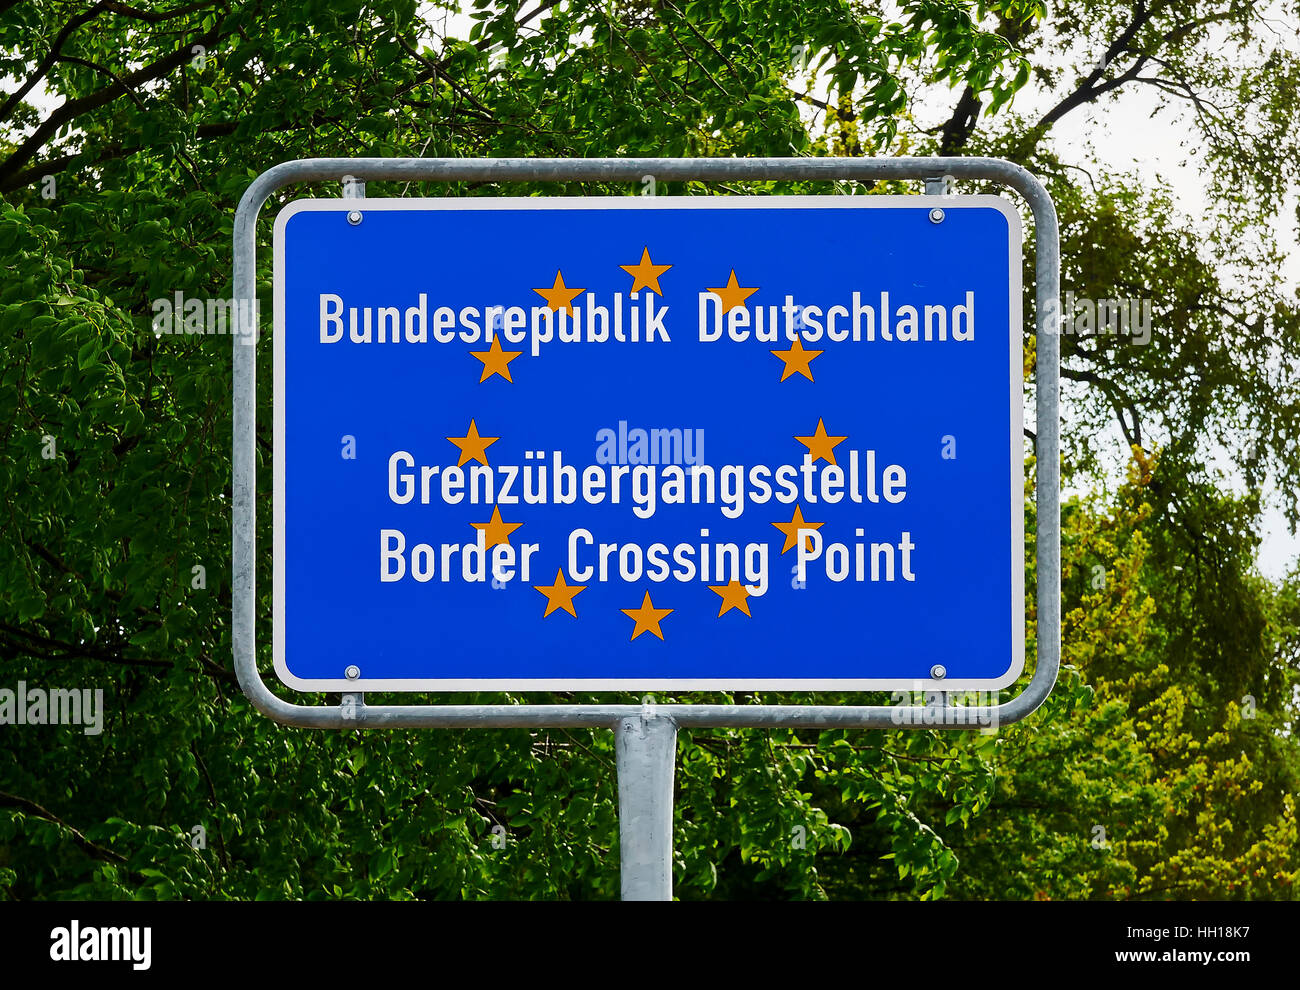 Border Crossing Point to Germany, EU - Stock Image